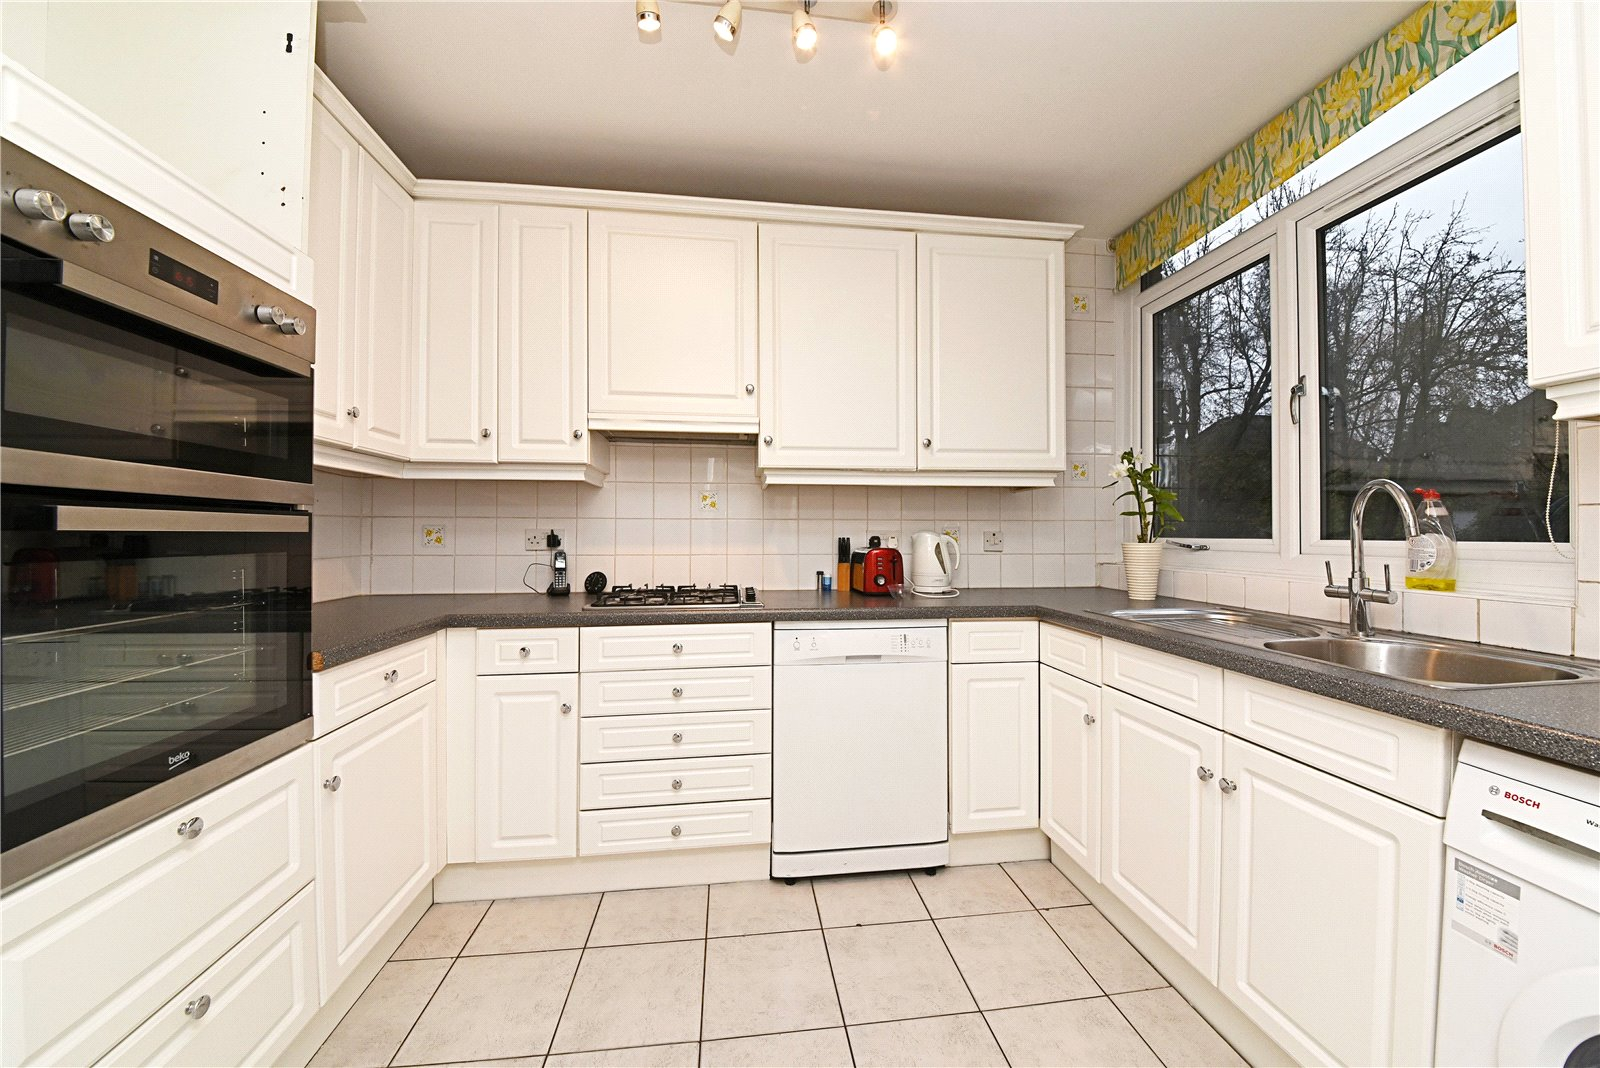 2 bed apartment for sale in Hendon, NW4 1RB, NW4